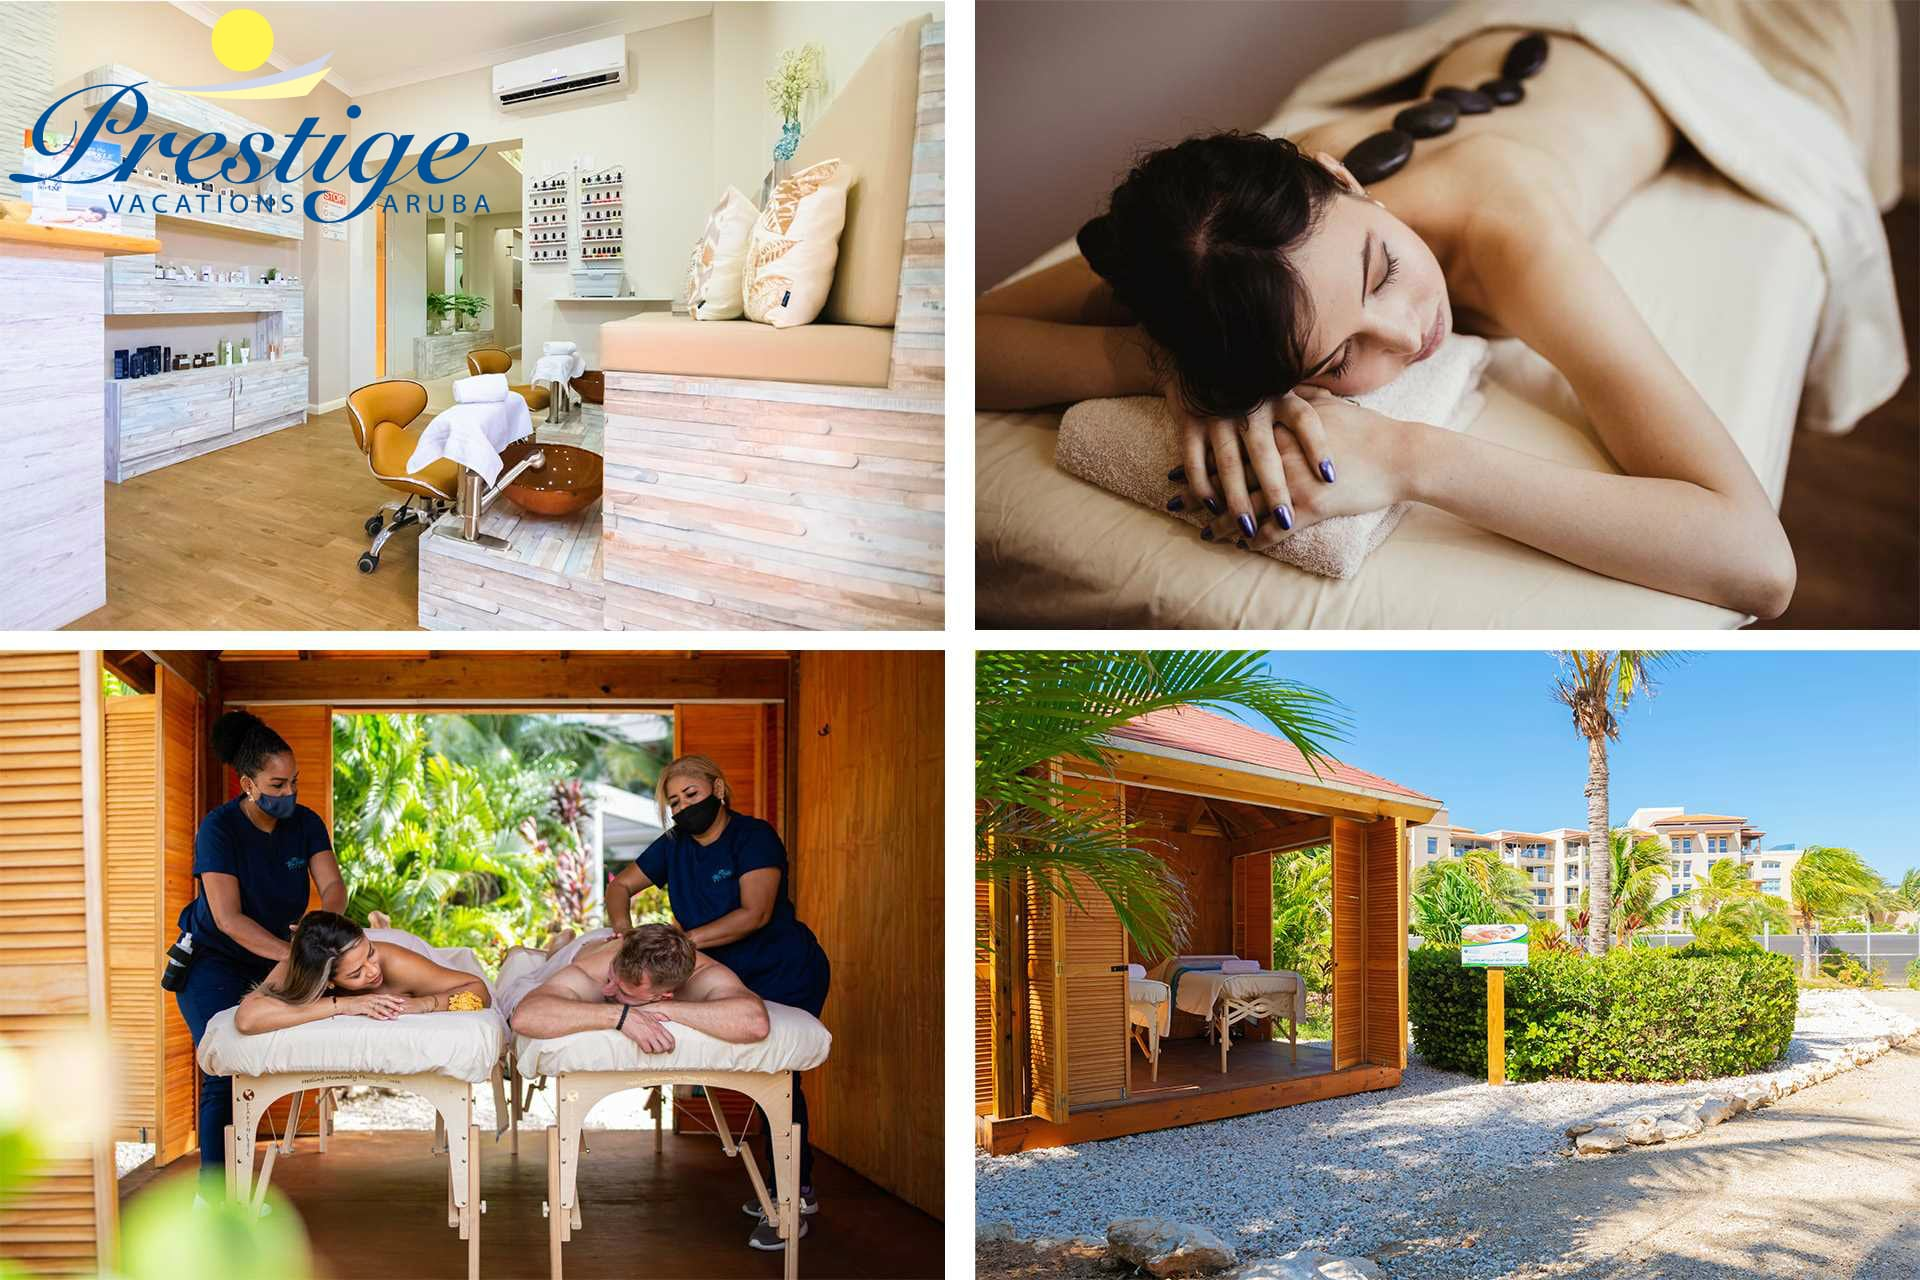 There is a day spa on-site: Blue Waters Day Spa, with in- and outdoor massage treatments!